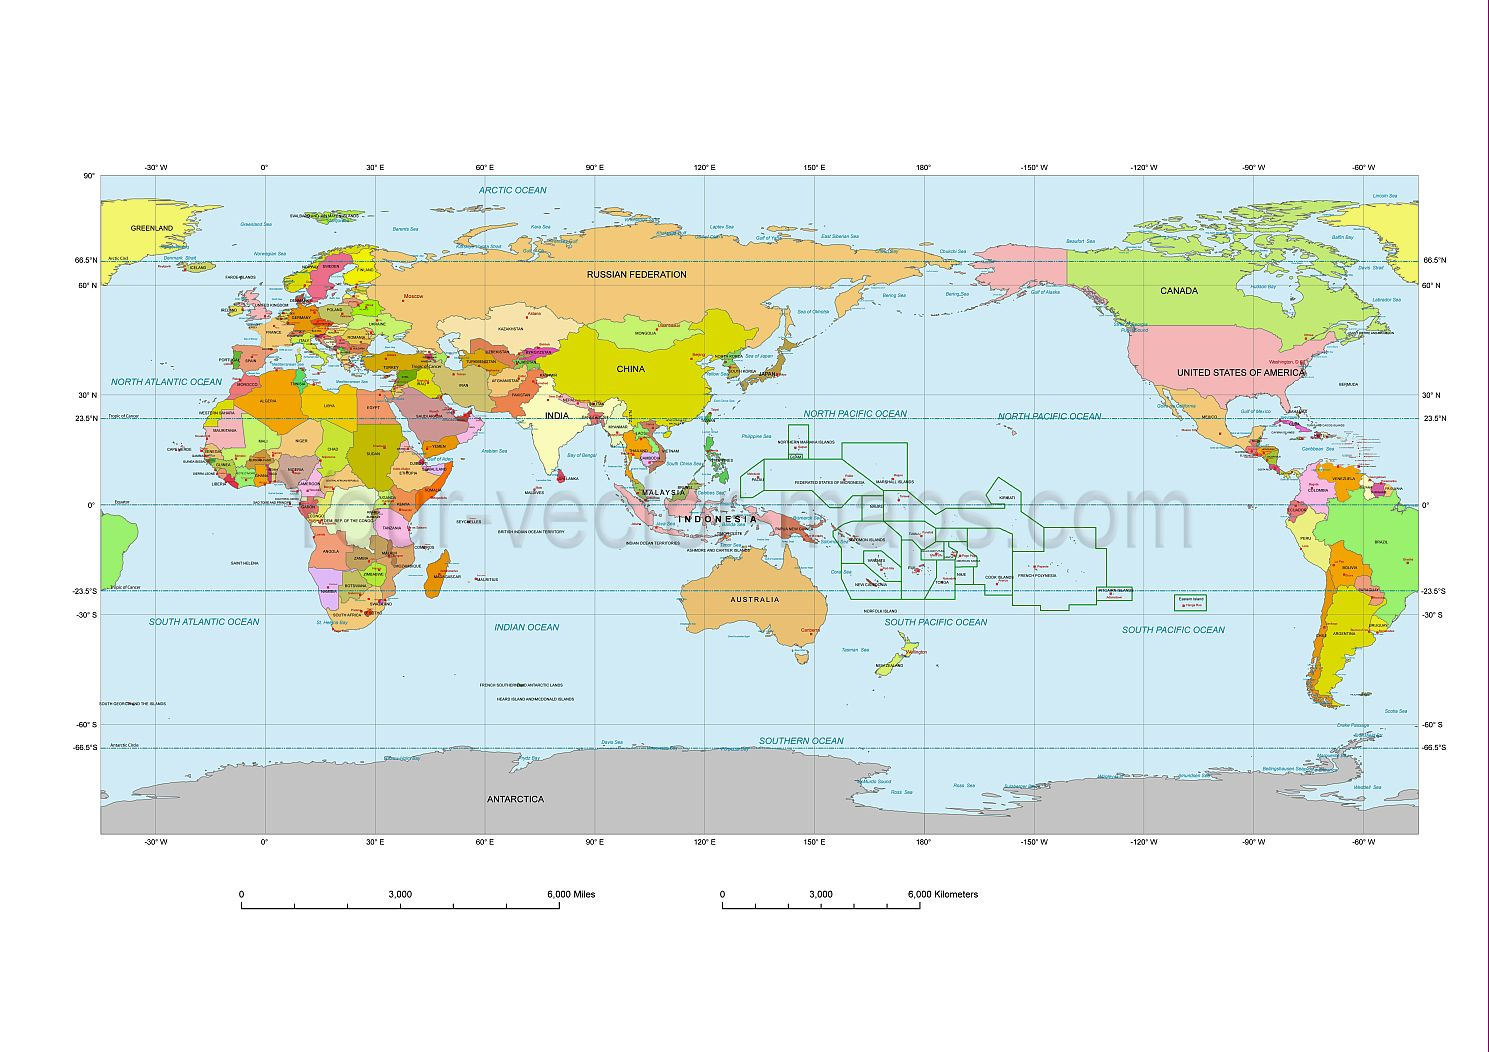 Oceania centered colored map with country names map projections oceania centered colored map with country names gumiabroncs Choice Image